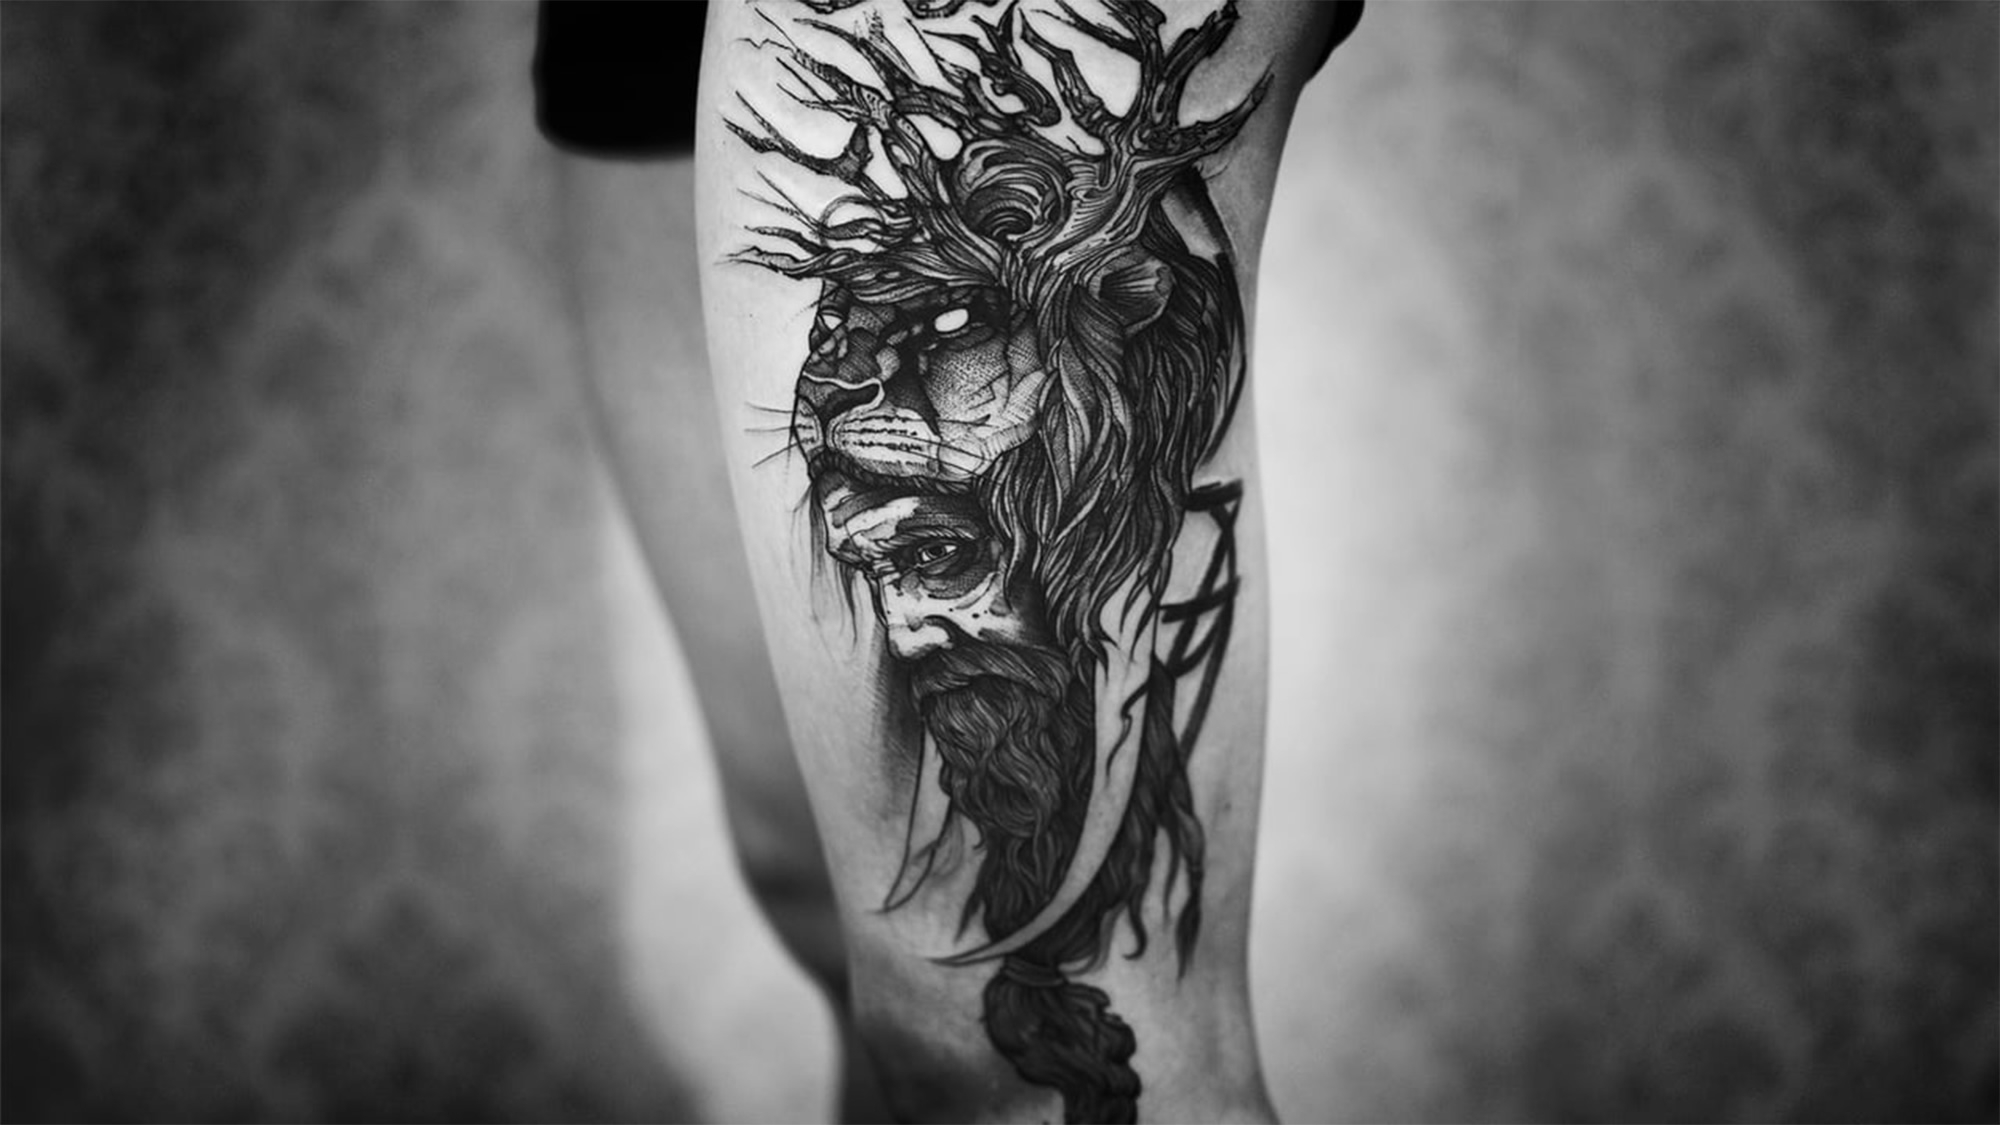 Sick thigh leg piece by Fredao Oliveira